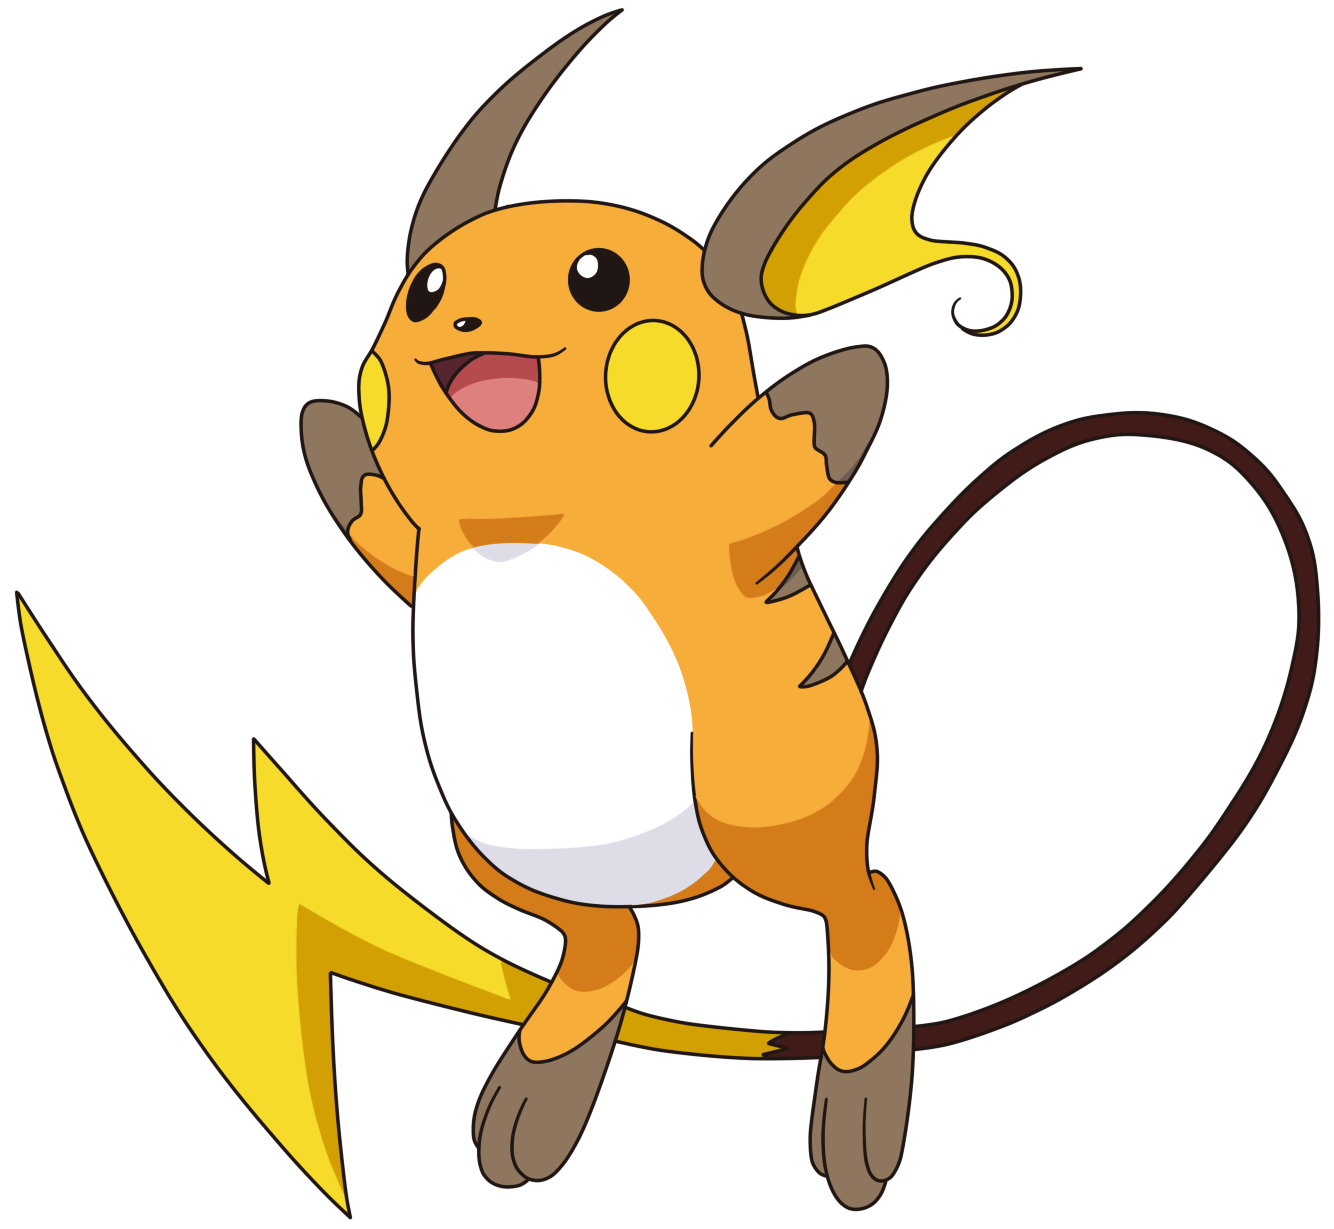 026-Raichu (Male) by Tzblacktd on DeviantArt